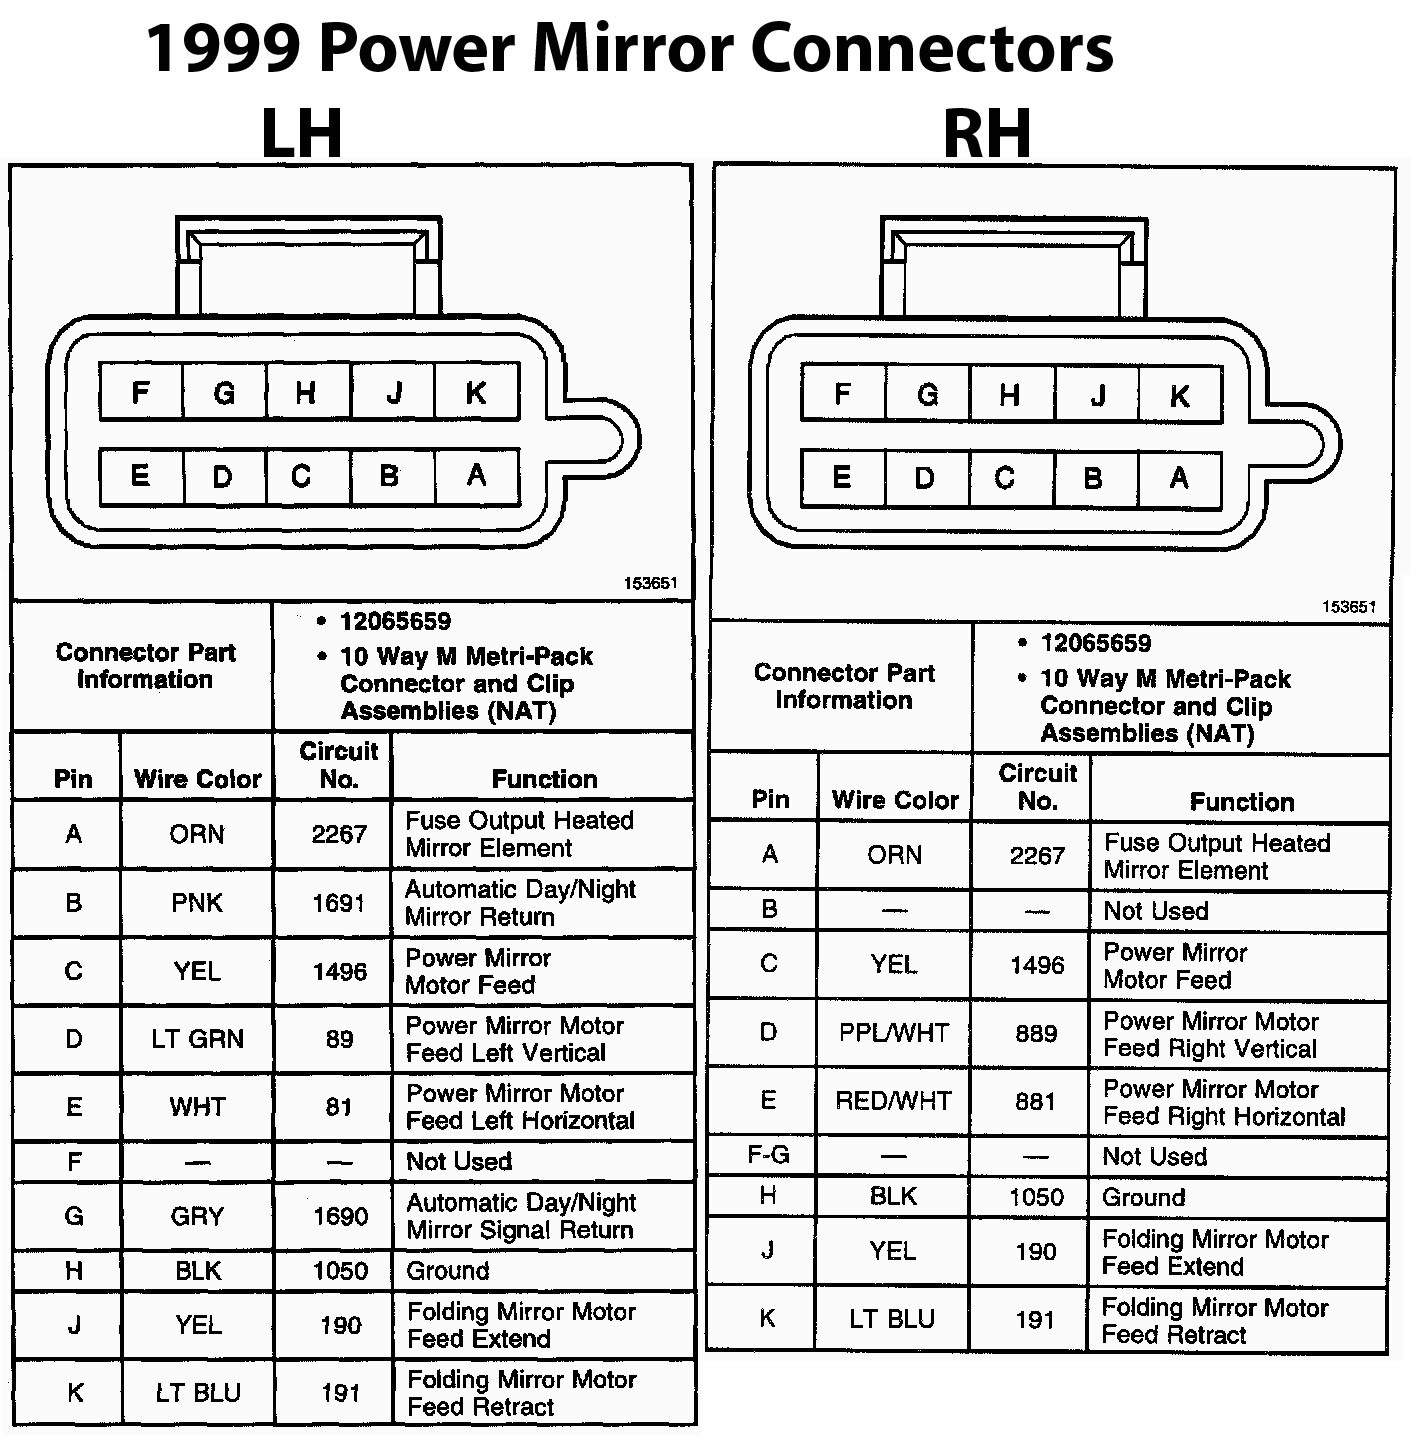 2014 Silverado Radio Wiring Diagram from mainetreasurechest.com